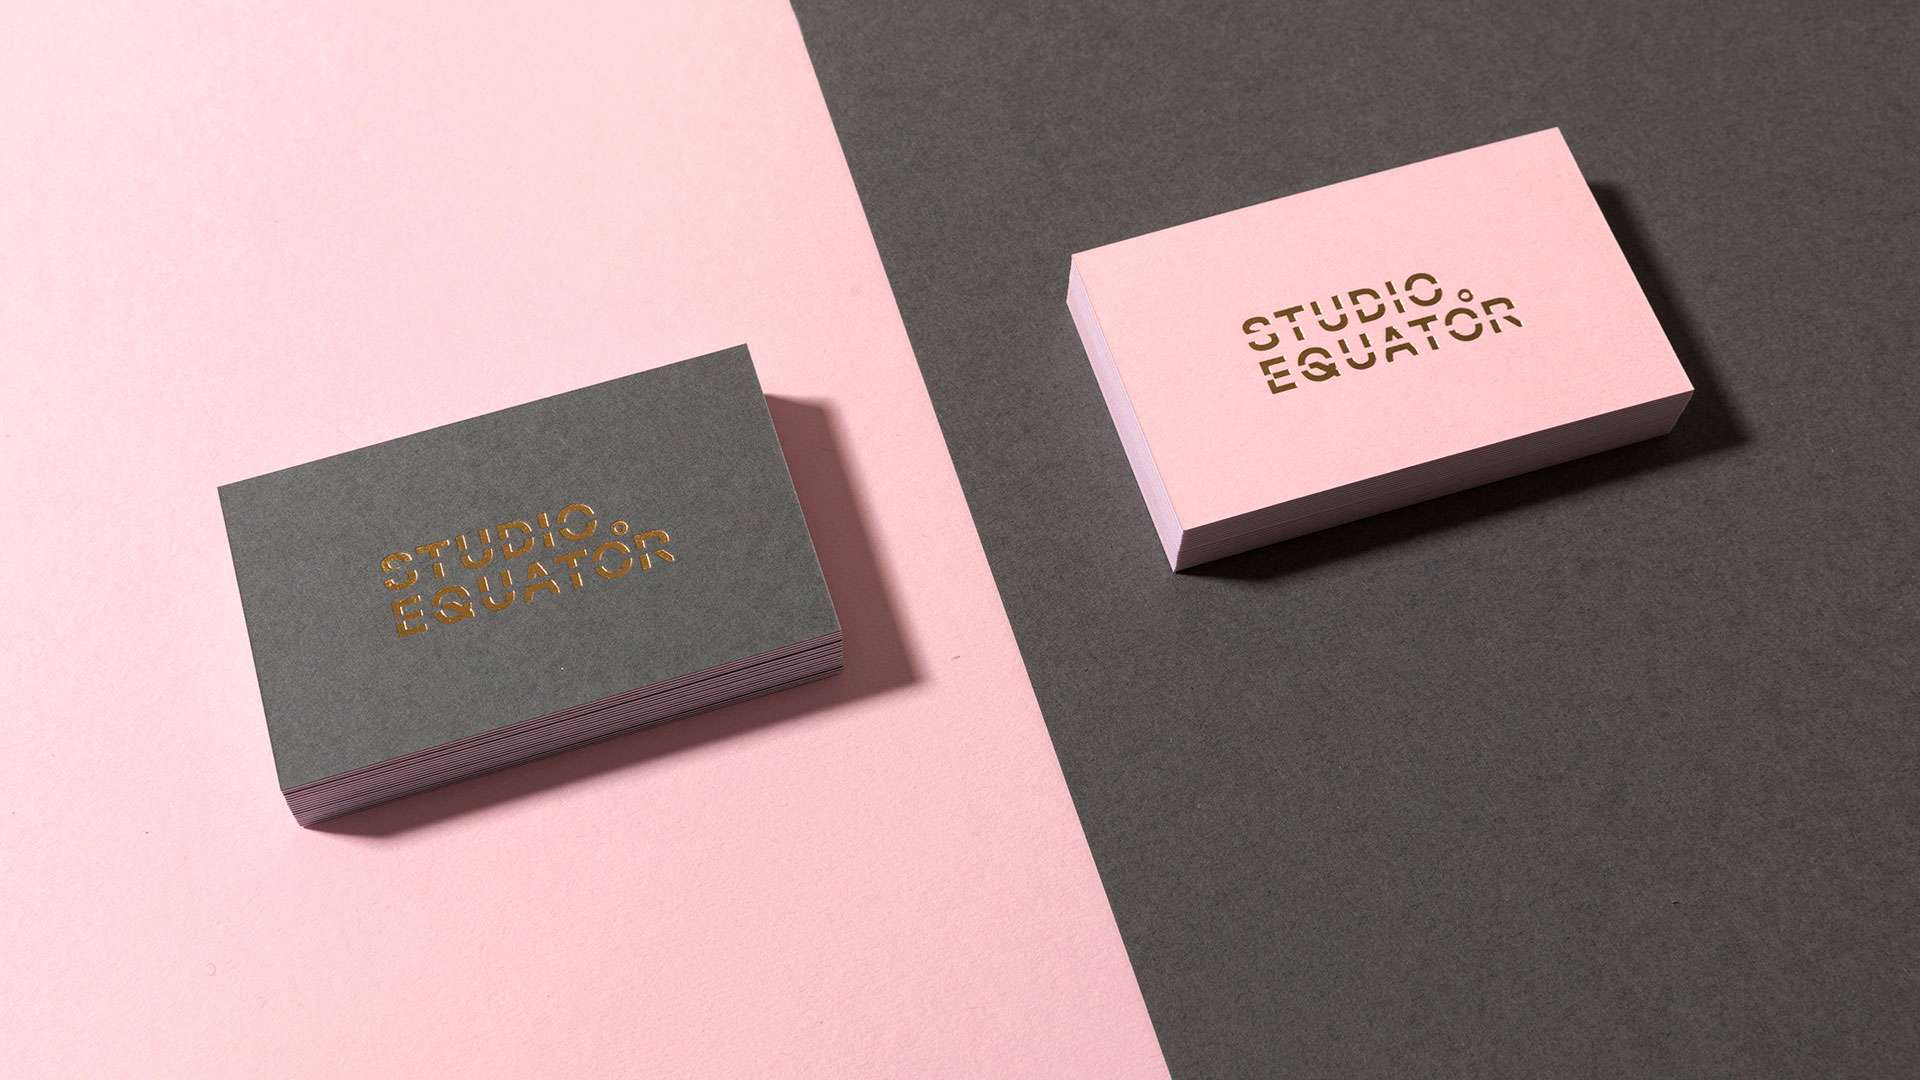 Studio Equator's New Visual Identity: Business Stationery